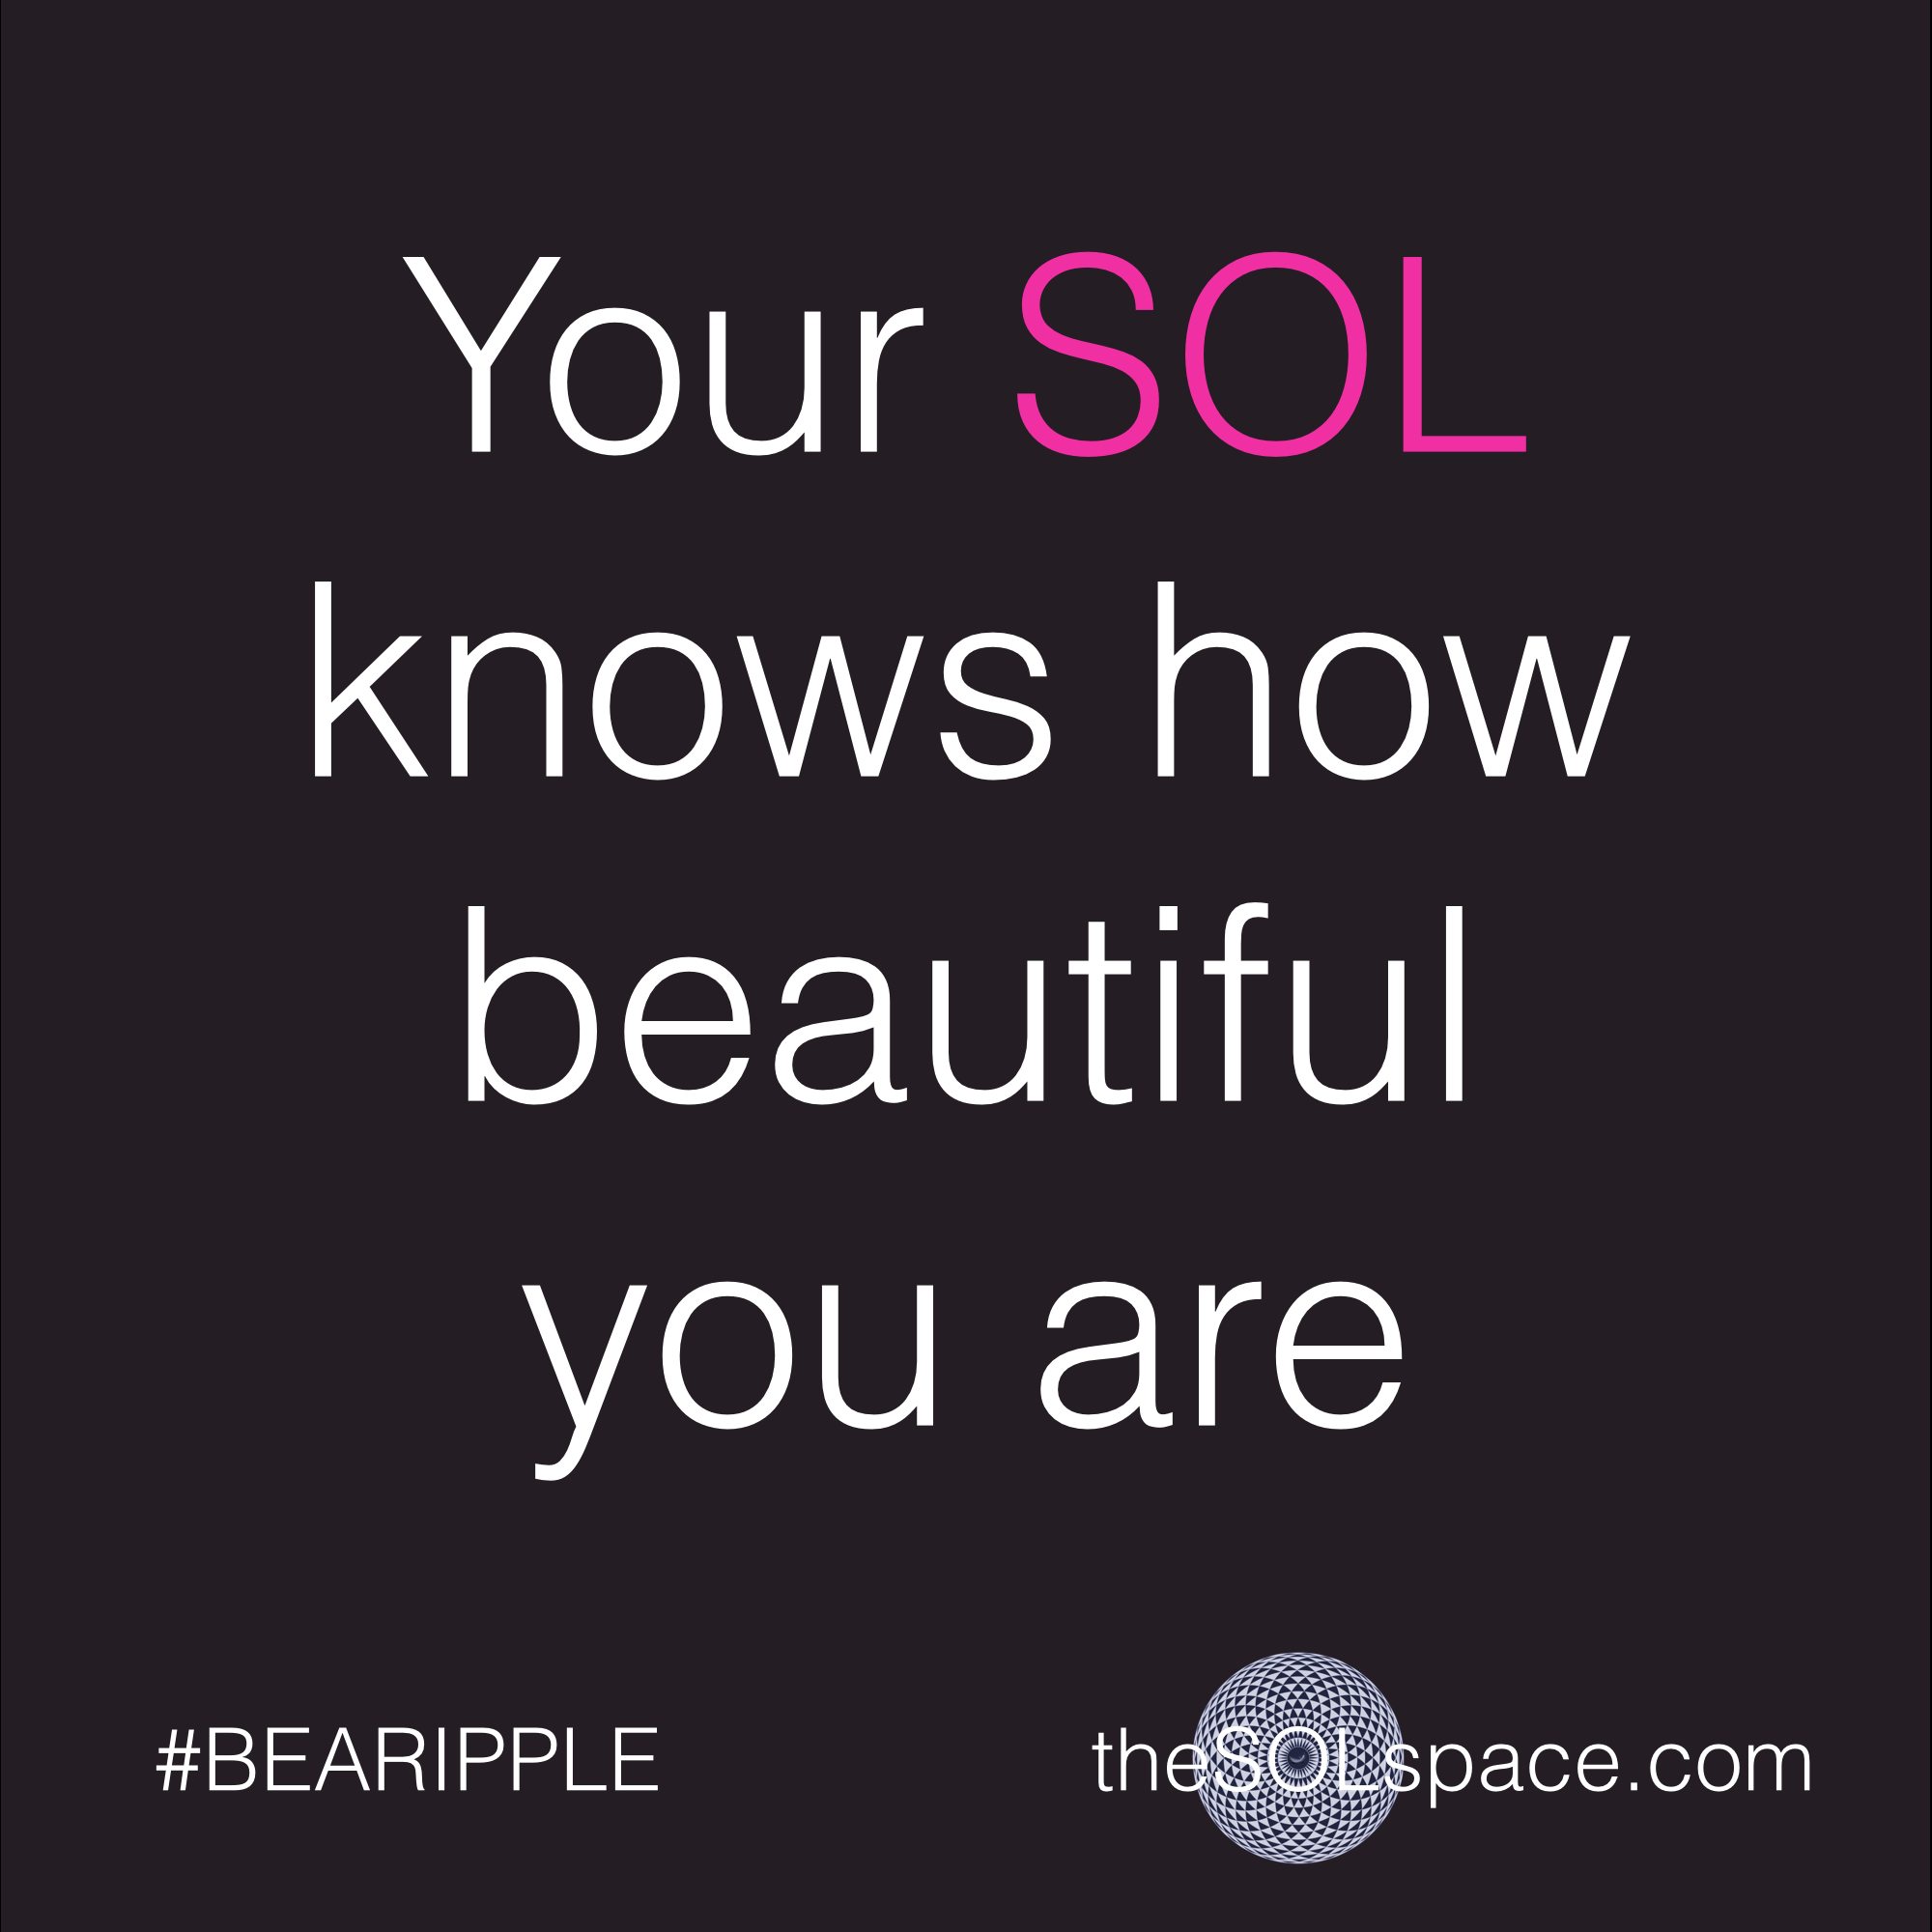 #BeARipple..Your SOL knows how beautiful you are @theSOLspace